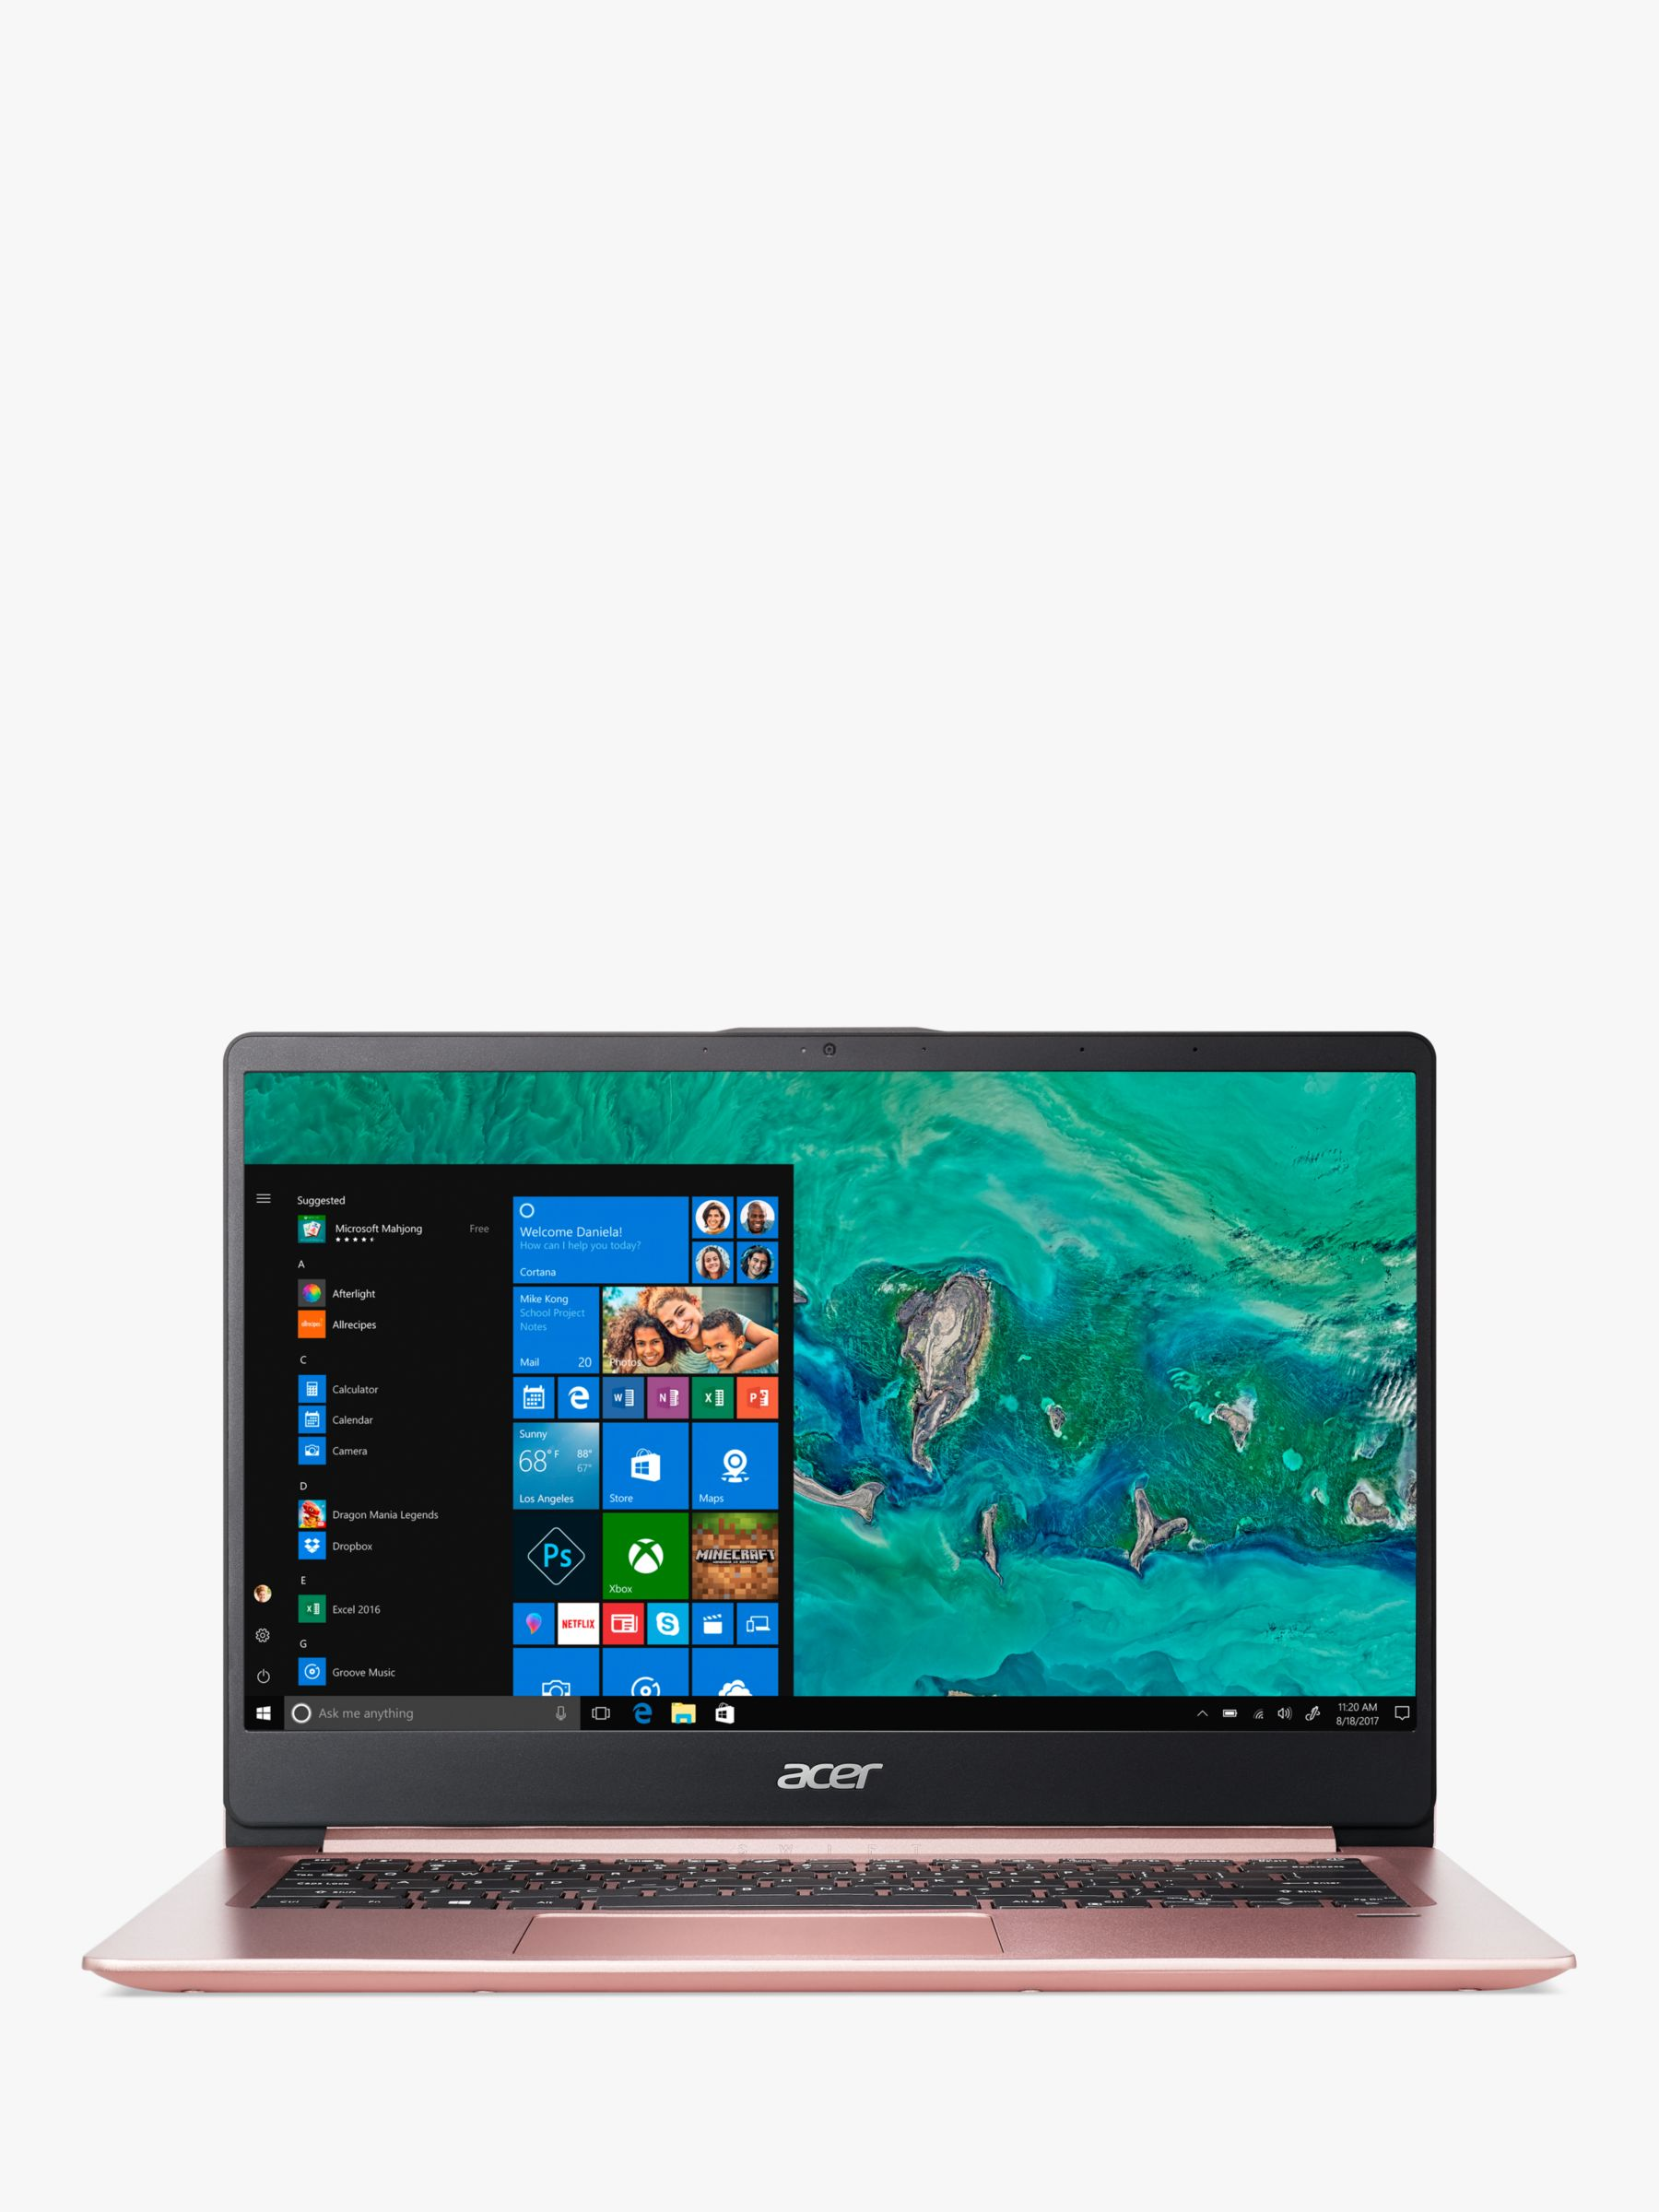 Acer Acer Swift 1 SF114-32 Laptop, Intel Pentium Processor, 4GB RAM, 256GB SSD, 14 Full HD, Sakura Pink